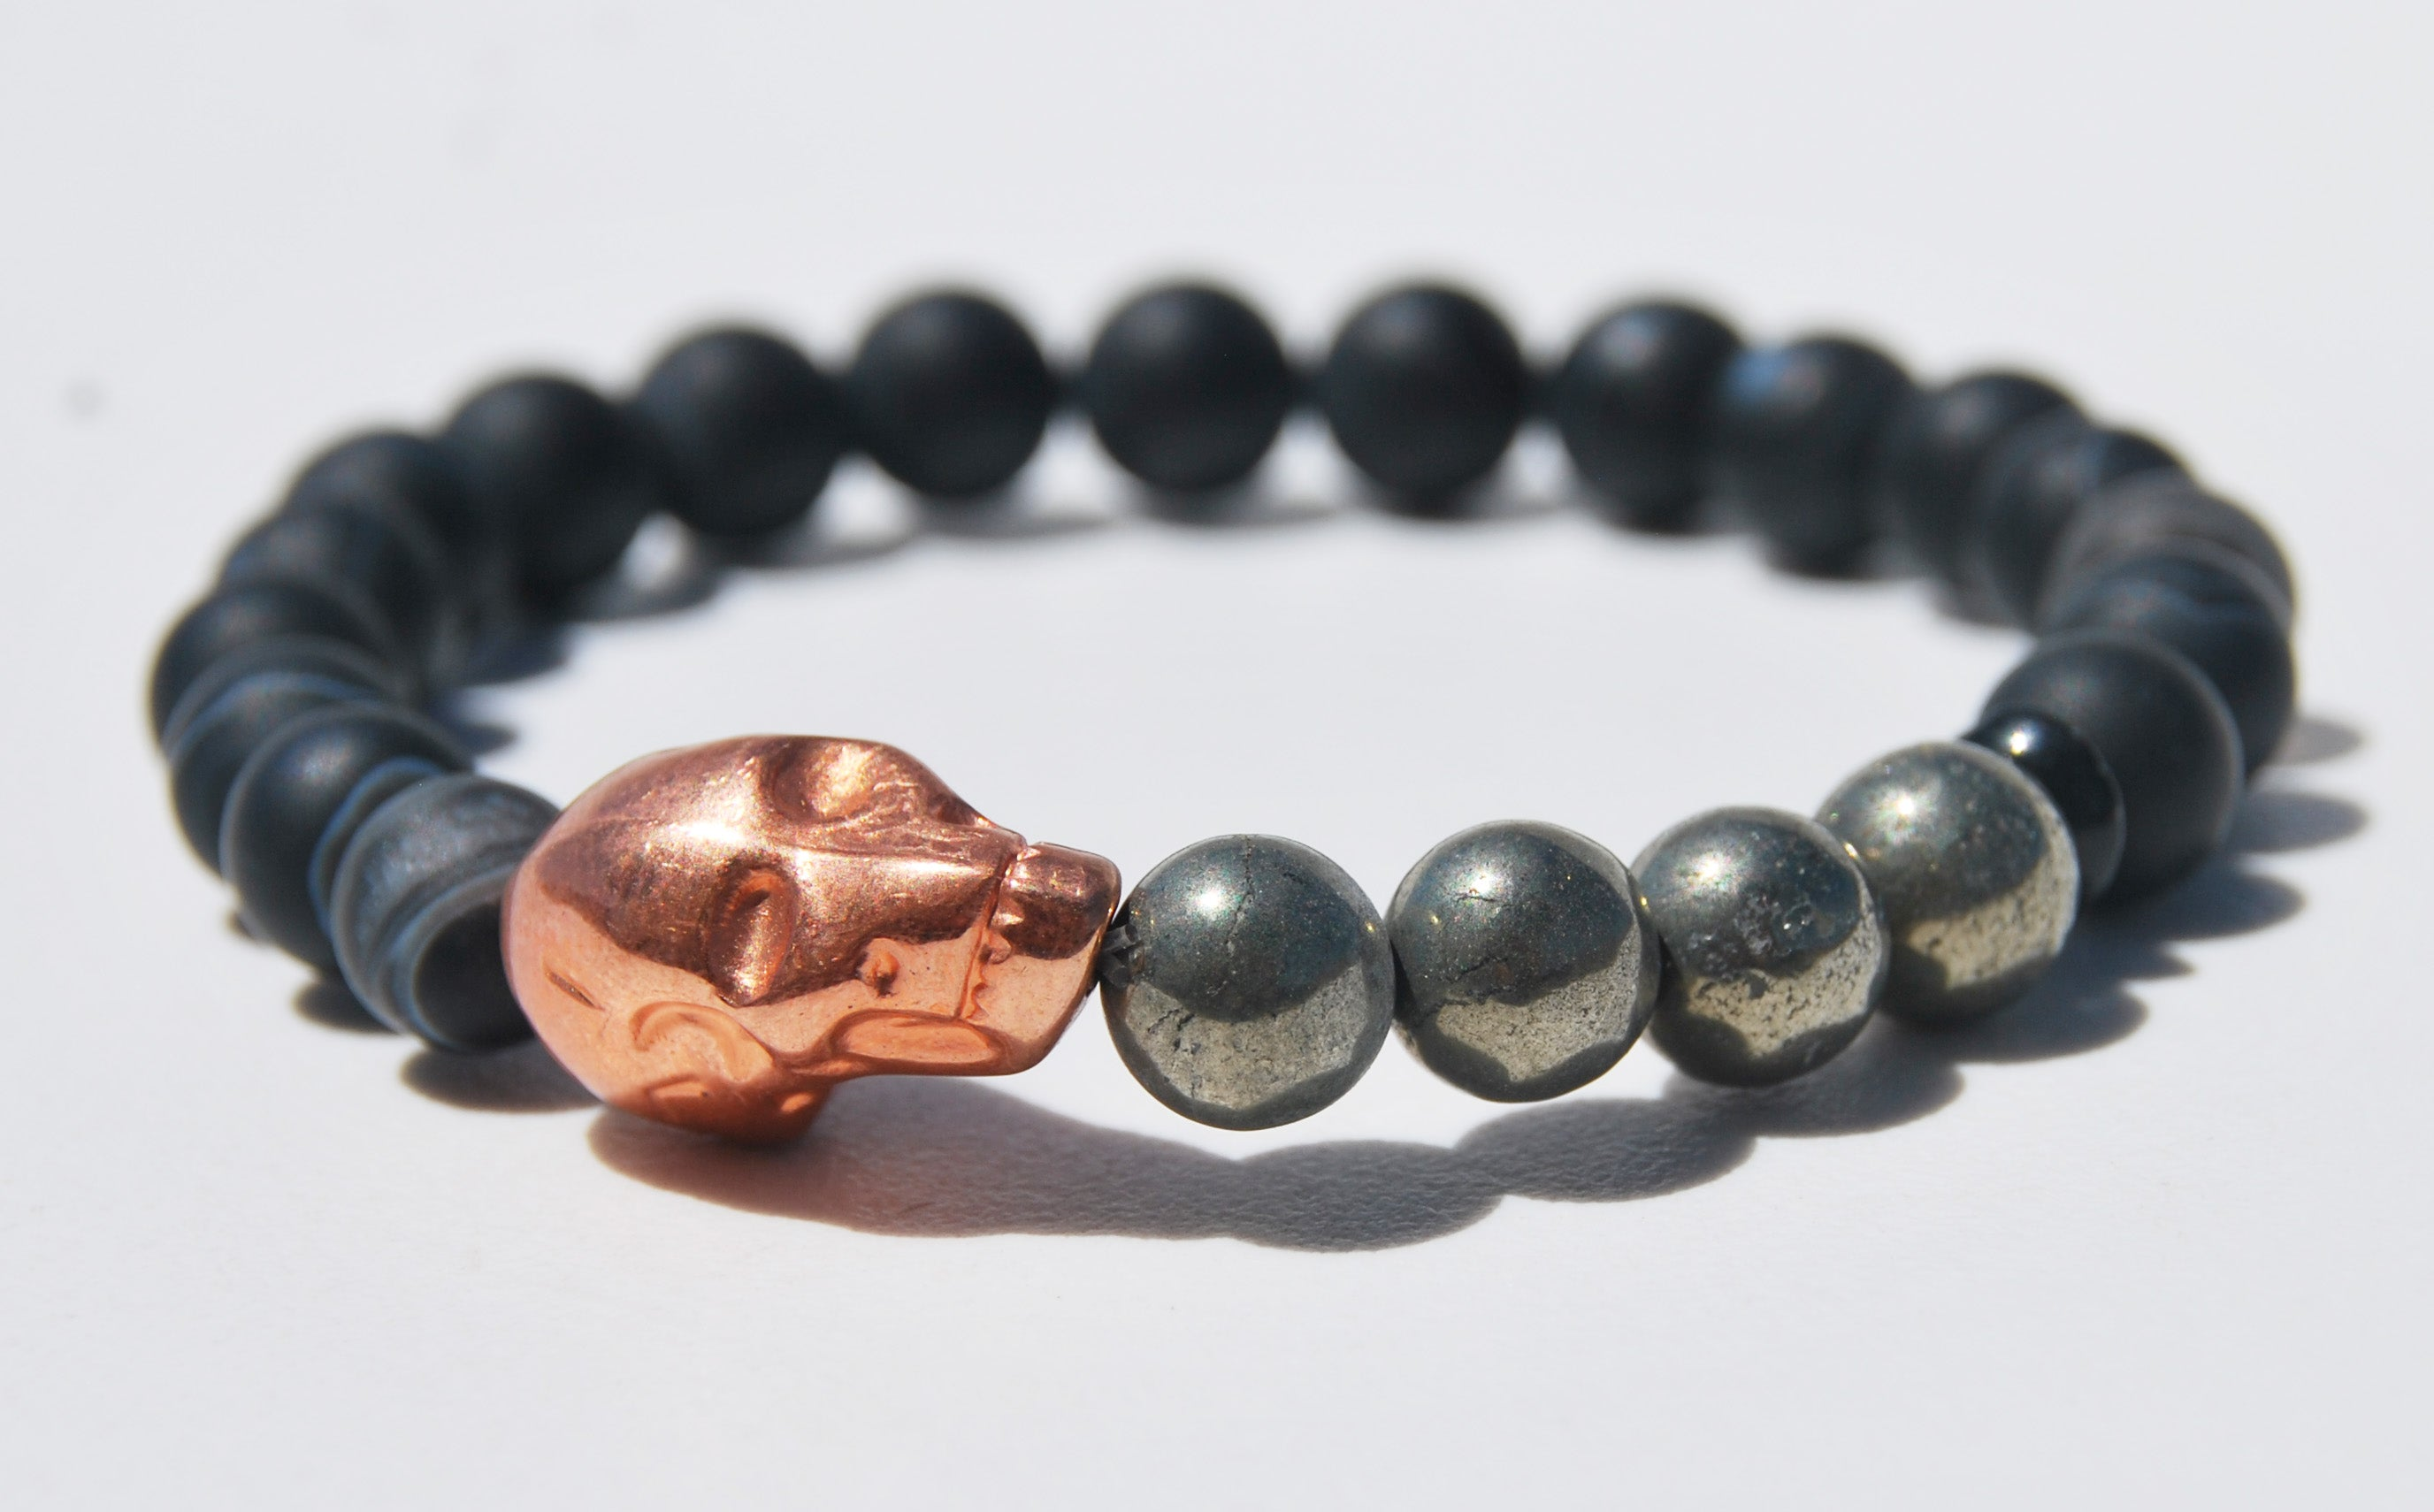 Matte Sardonox and Pyrite with Large Alien Head Stretch Bracelet